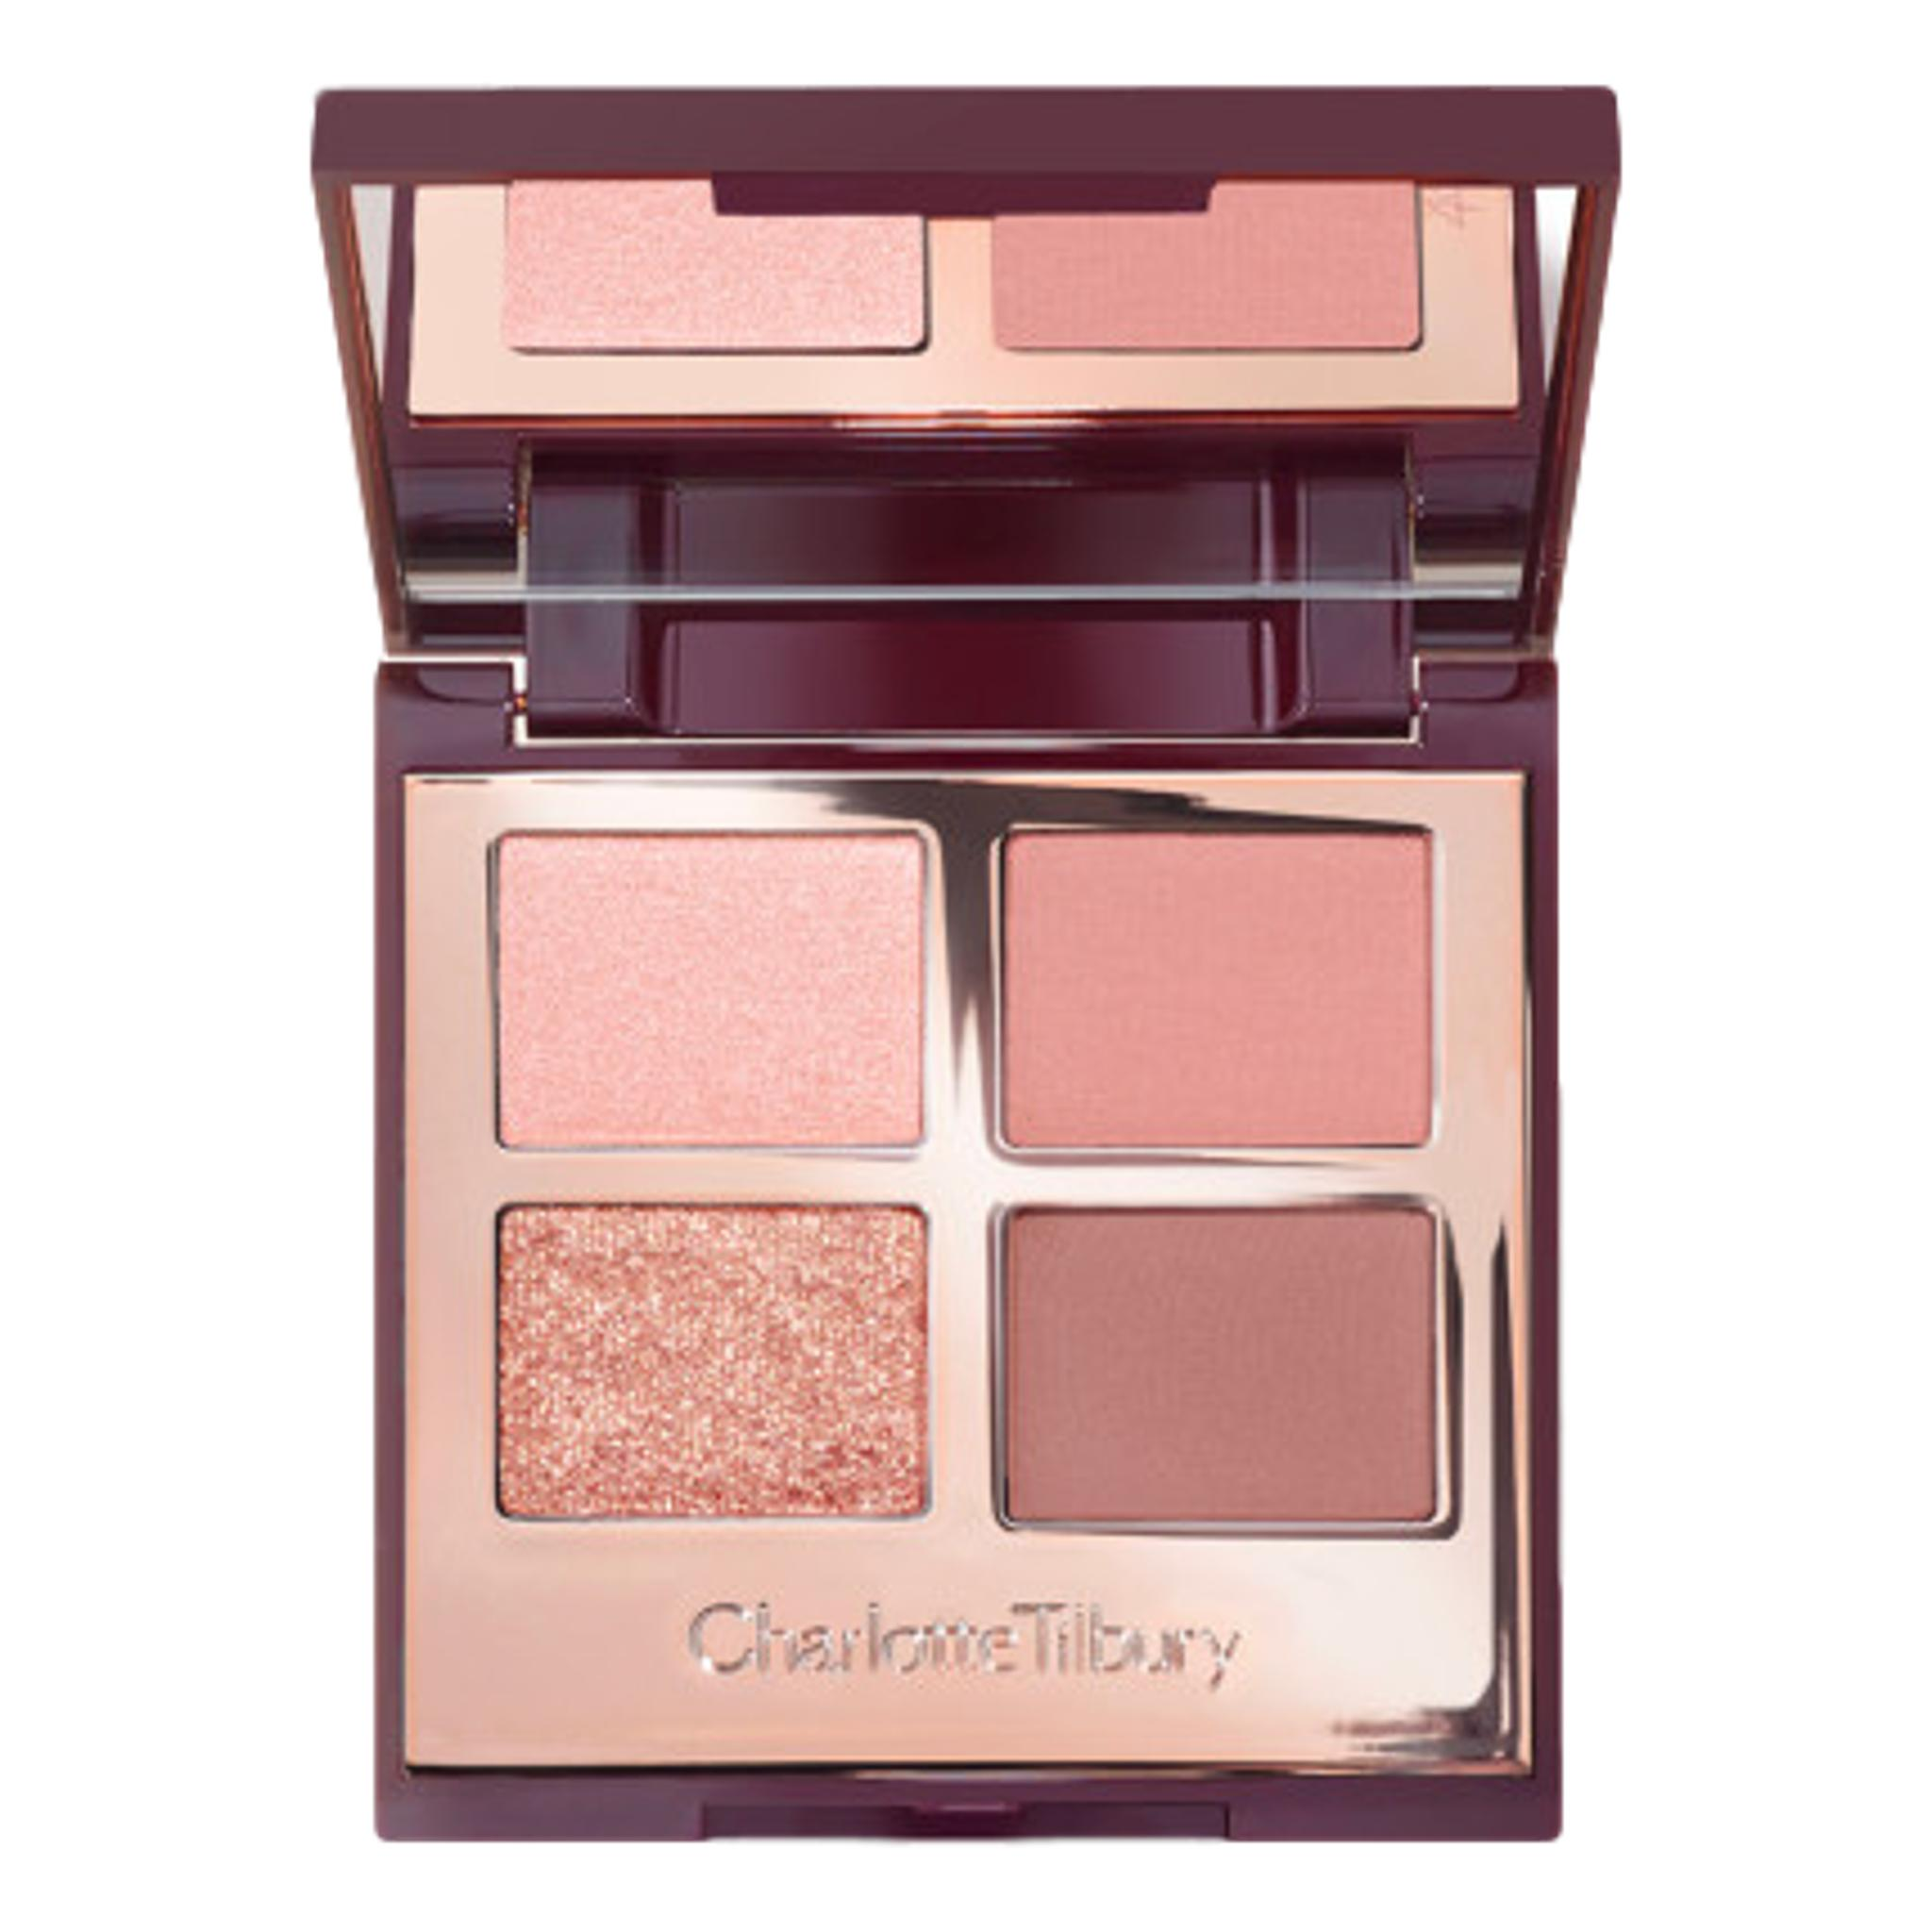 Charlotte Tilbury Luxury Eyeshadow Palette - Pillow Talk, eyeshadow palette, London Loves Beauty